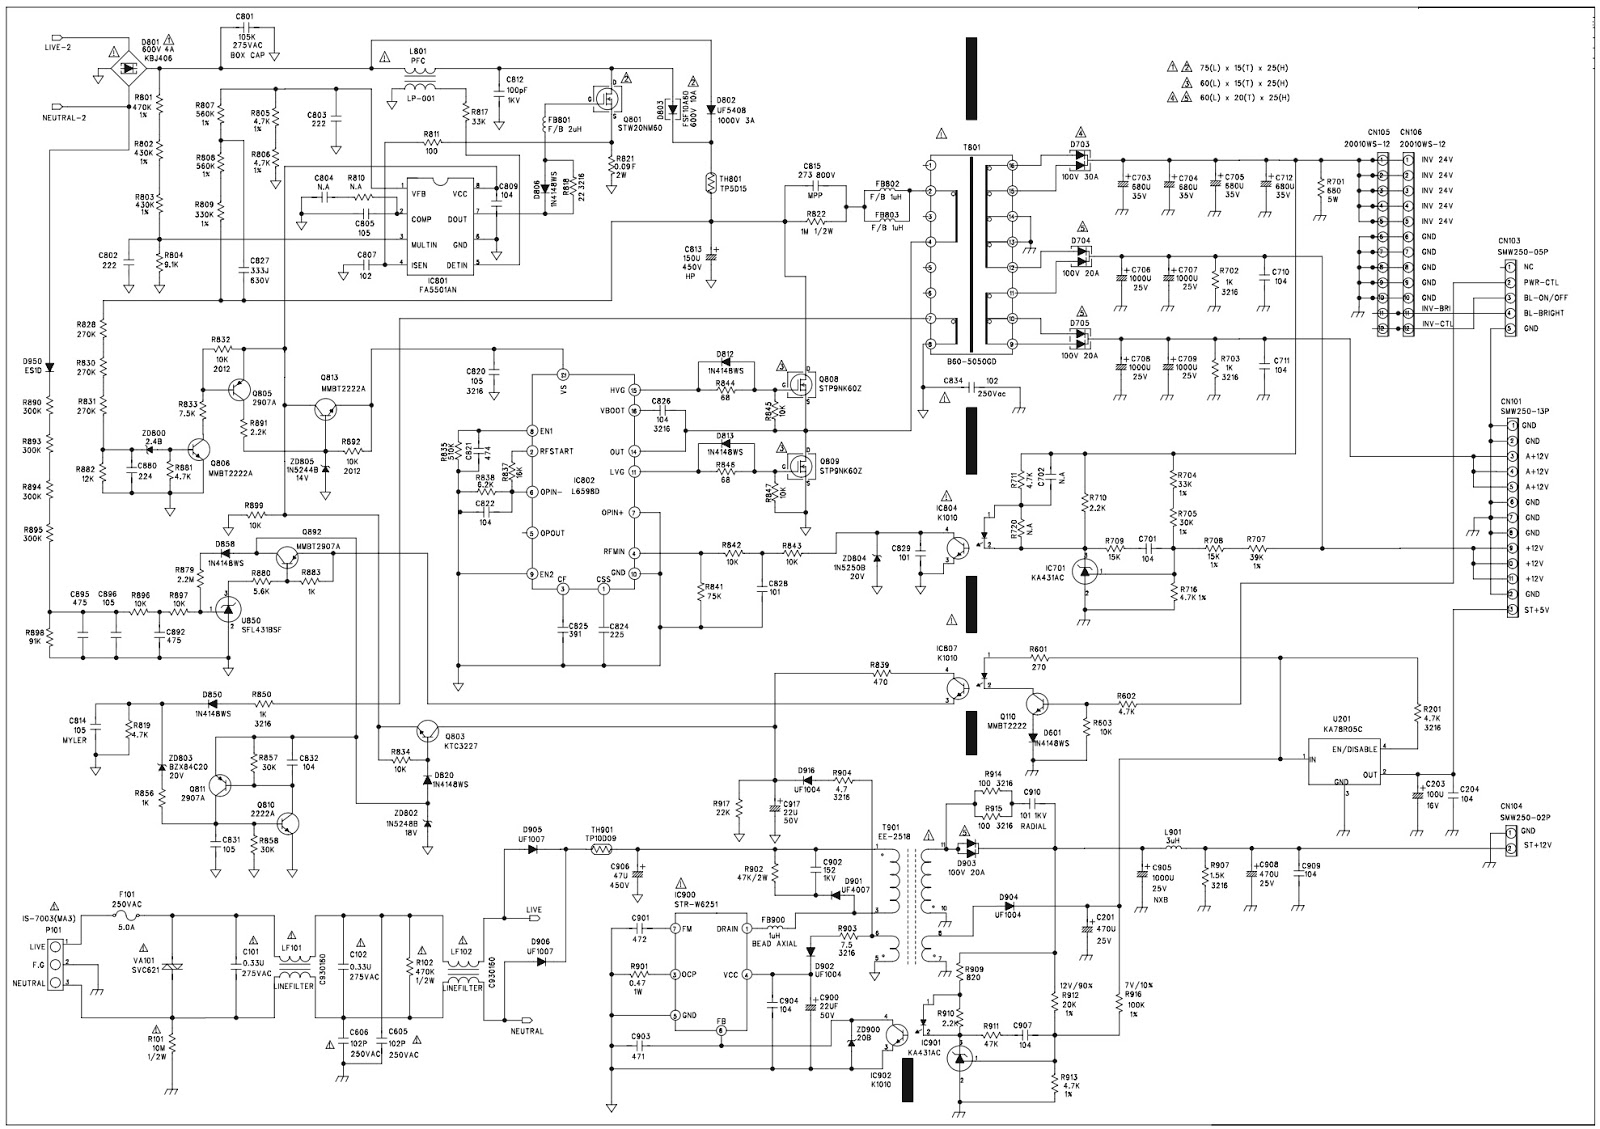 lg tv schematic wiring diagram lg circuit diagrams wire center u2022 rh linxglobal co samsung lcd tv wiring diagram samsung lcd tv wiring diagram